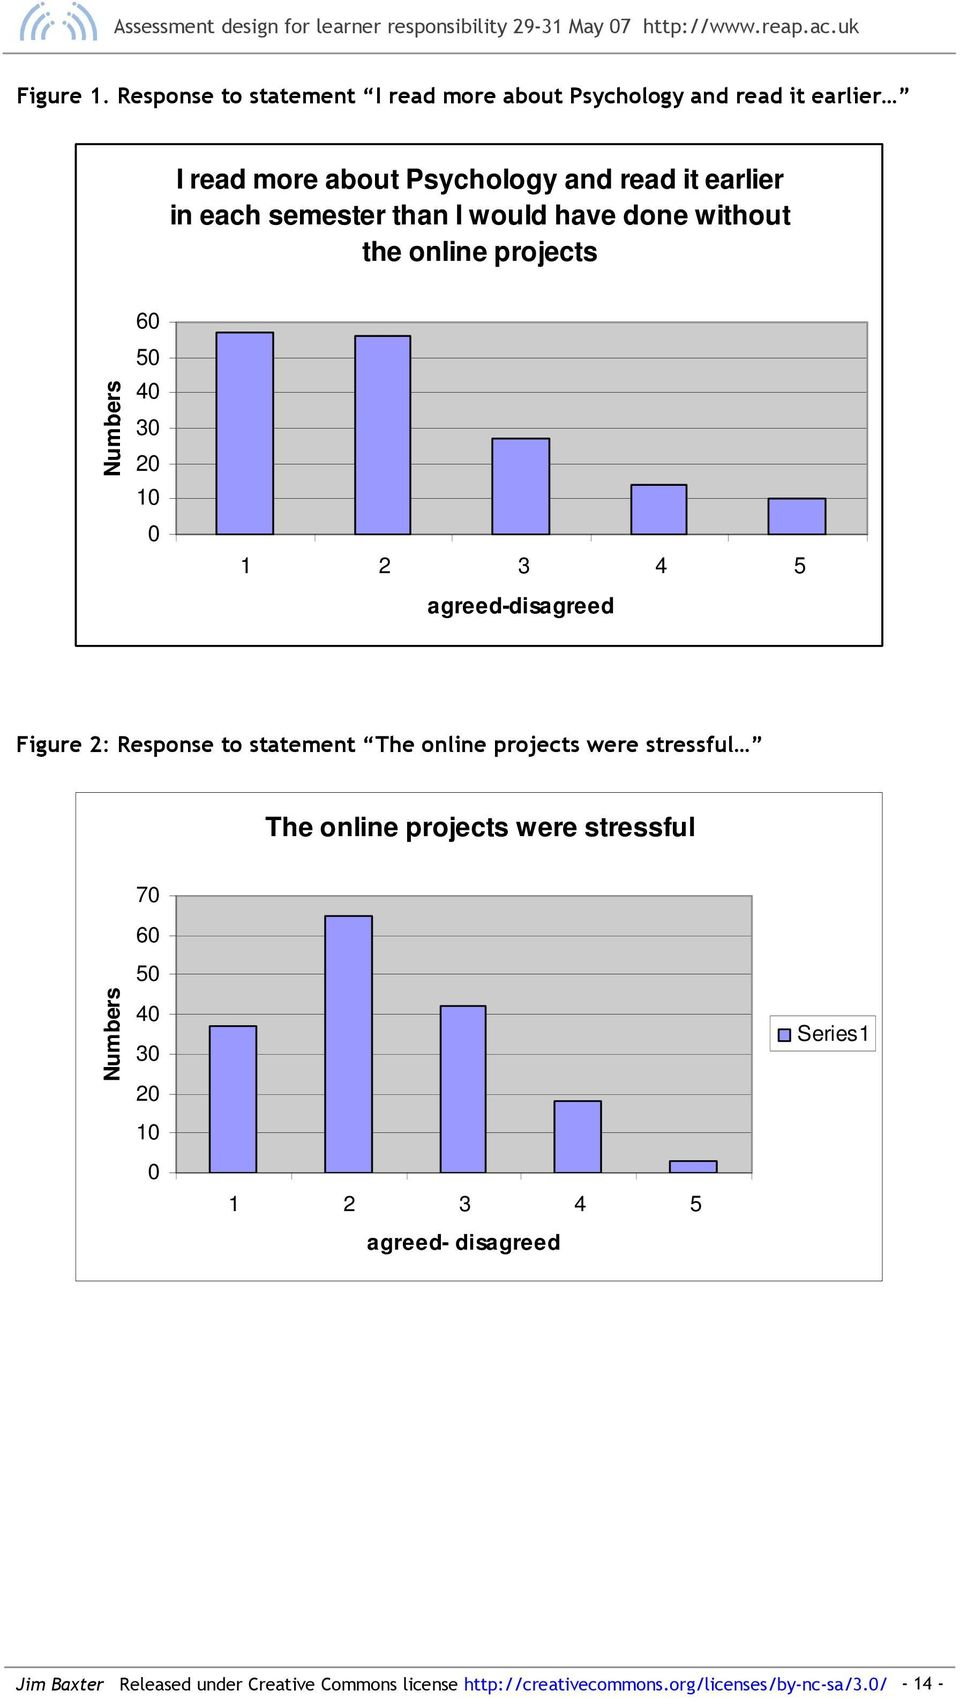 in each semester than I would have done without the online projects Numbers 6 5 4 3 1 agreed-disagreed Figure 2: Response